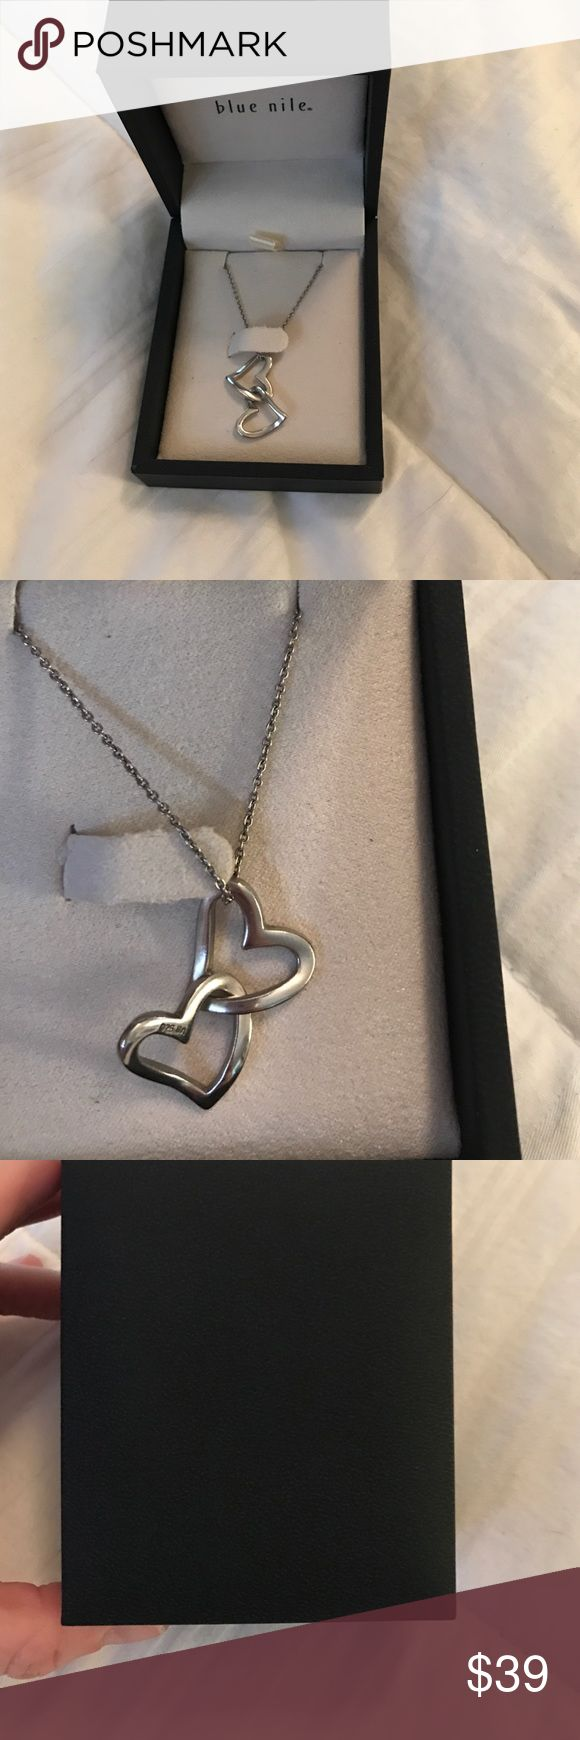 Blue Nile Double Heart Sterling Silver pendant Beautiful necklace, never worn still in the box. Blue Nile Jewelry Necklaces